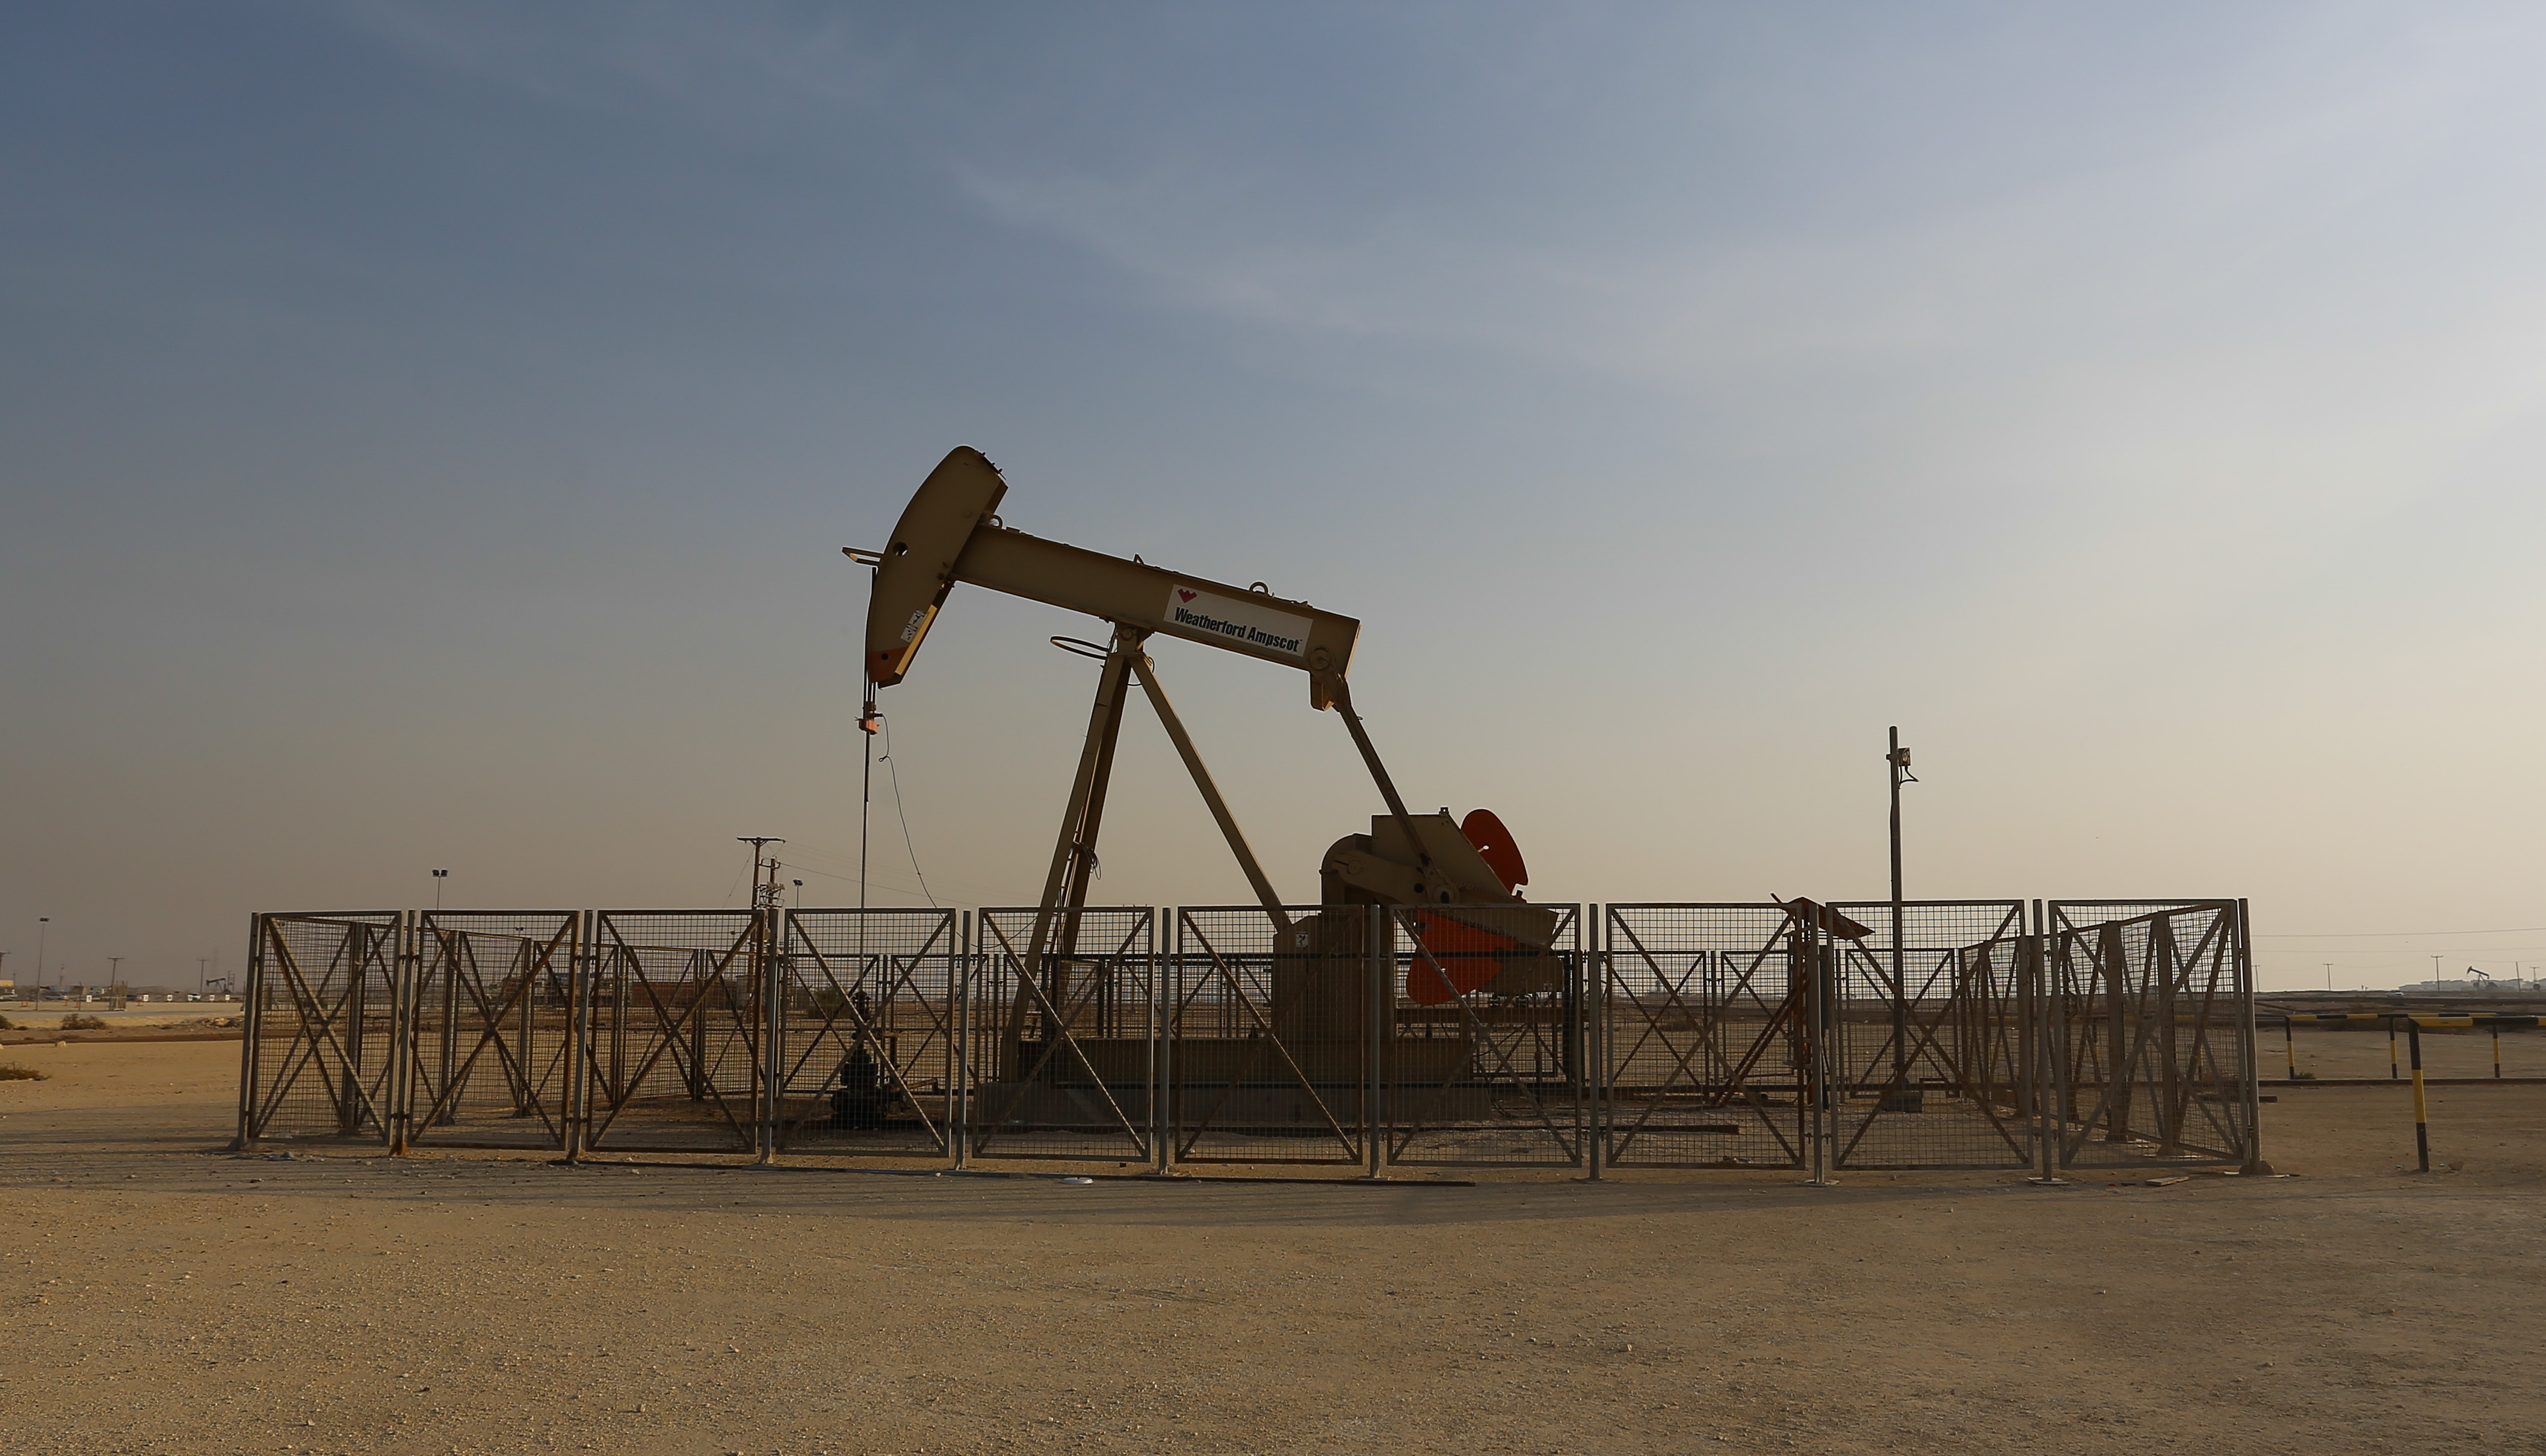 Declining oil revenues may hit Islamic banks